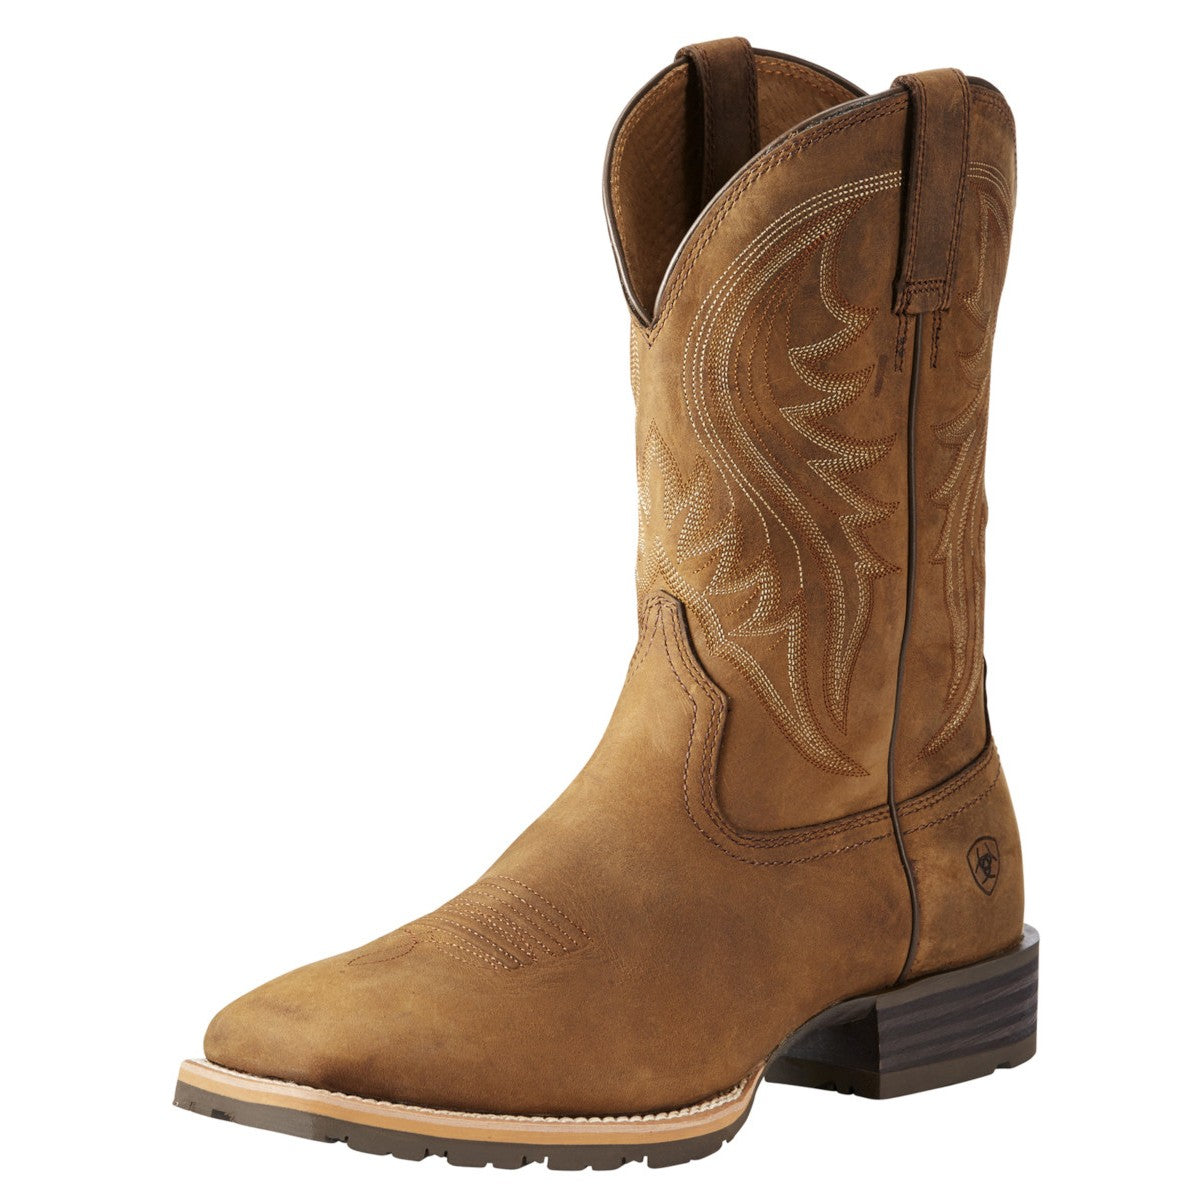 Ariat Men's Distressed Brown Hybrid Rancher Square Toe Cowboy Boots